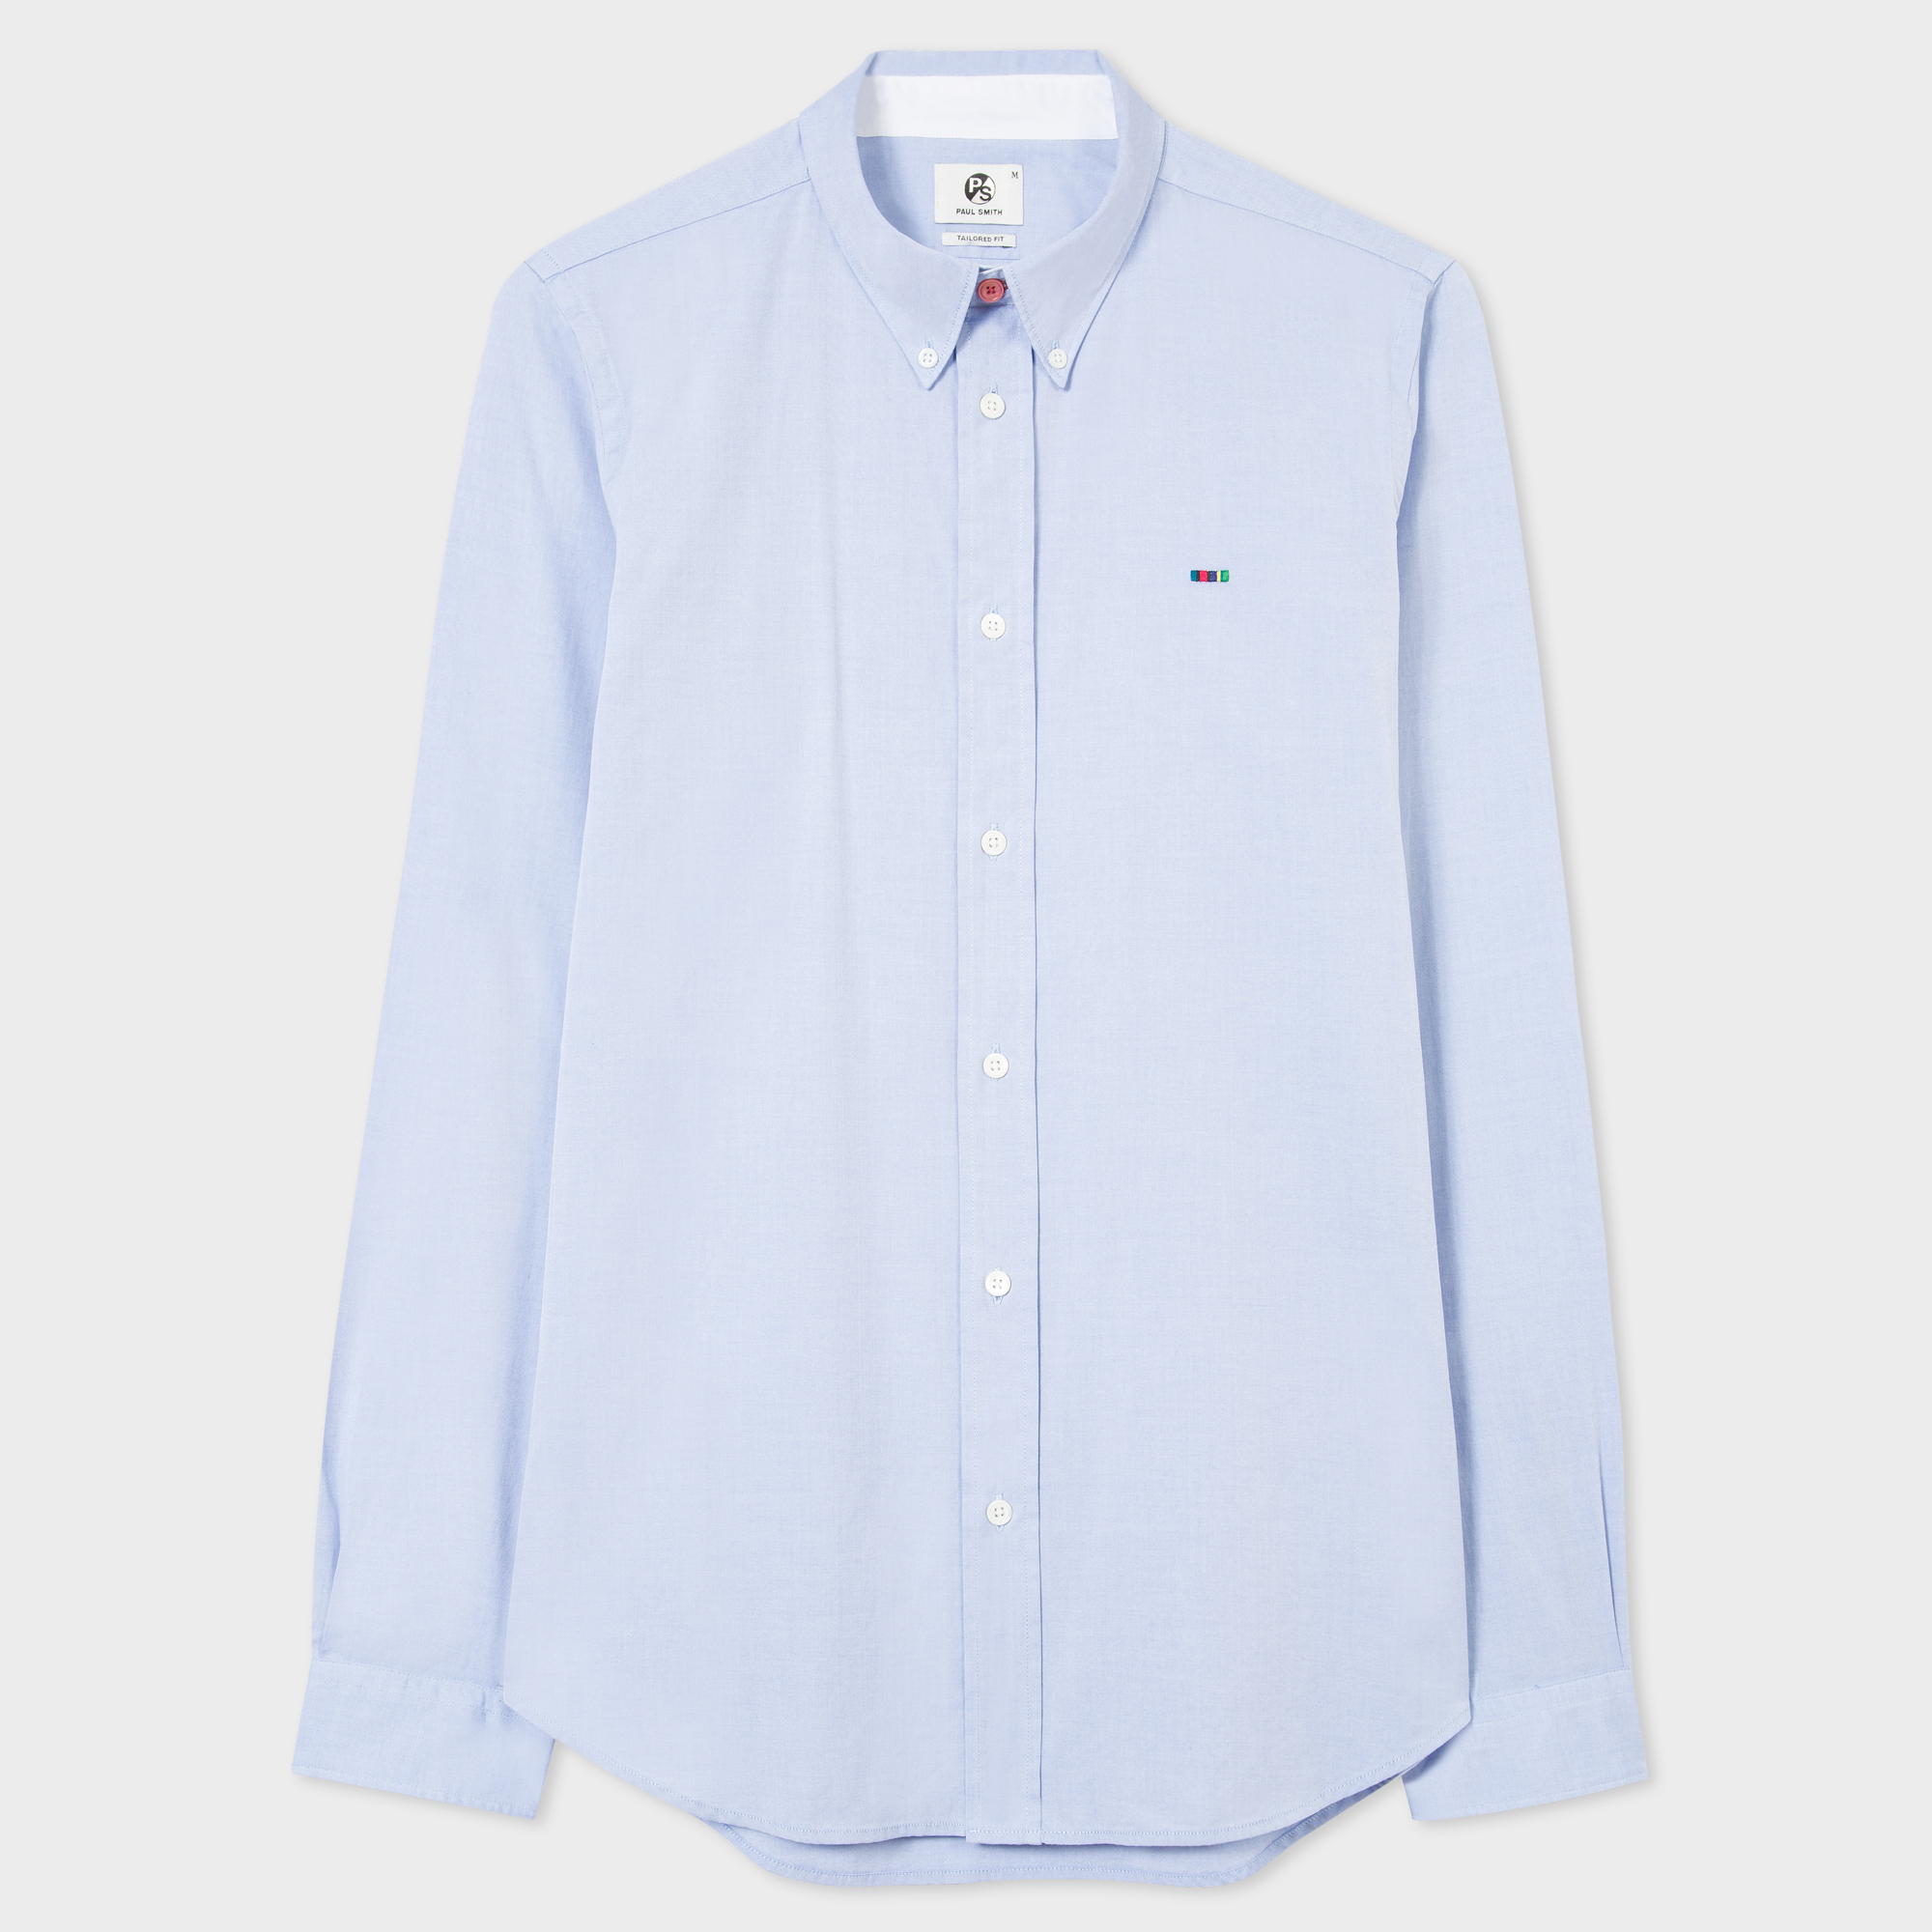 Paul Smith Men's Tailored-Fit Sky Blue Cotton Shirt With 'Cycle Stripe' Motif